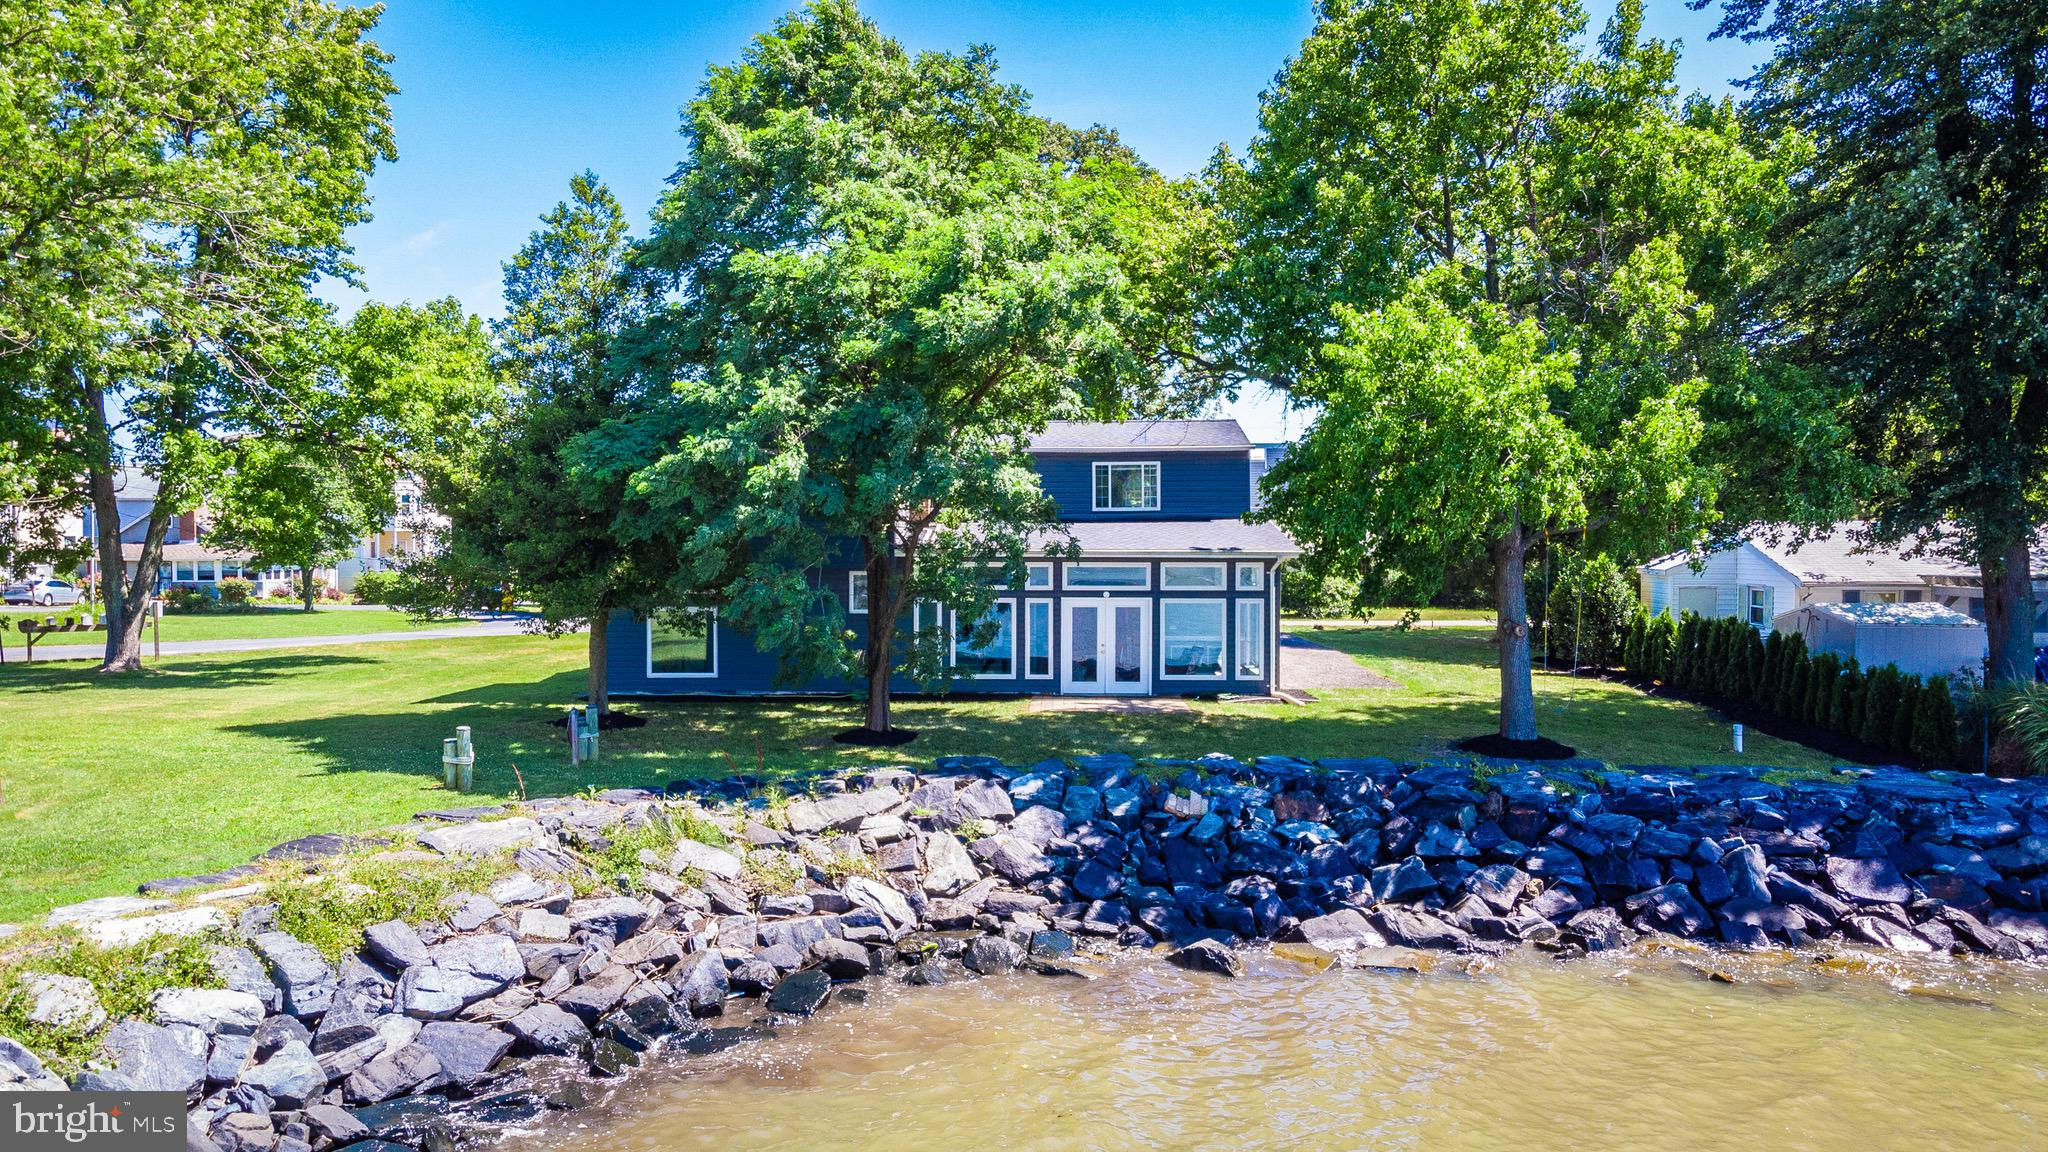 Watch the sunrise in a beautiful waterfront retreat less than an hour from the district. This house